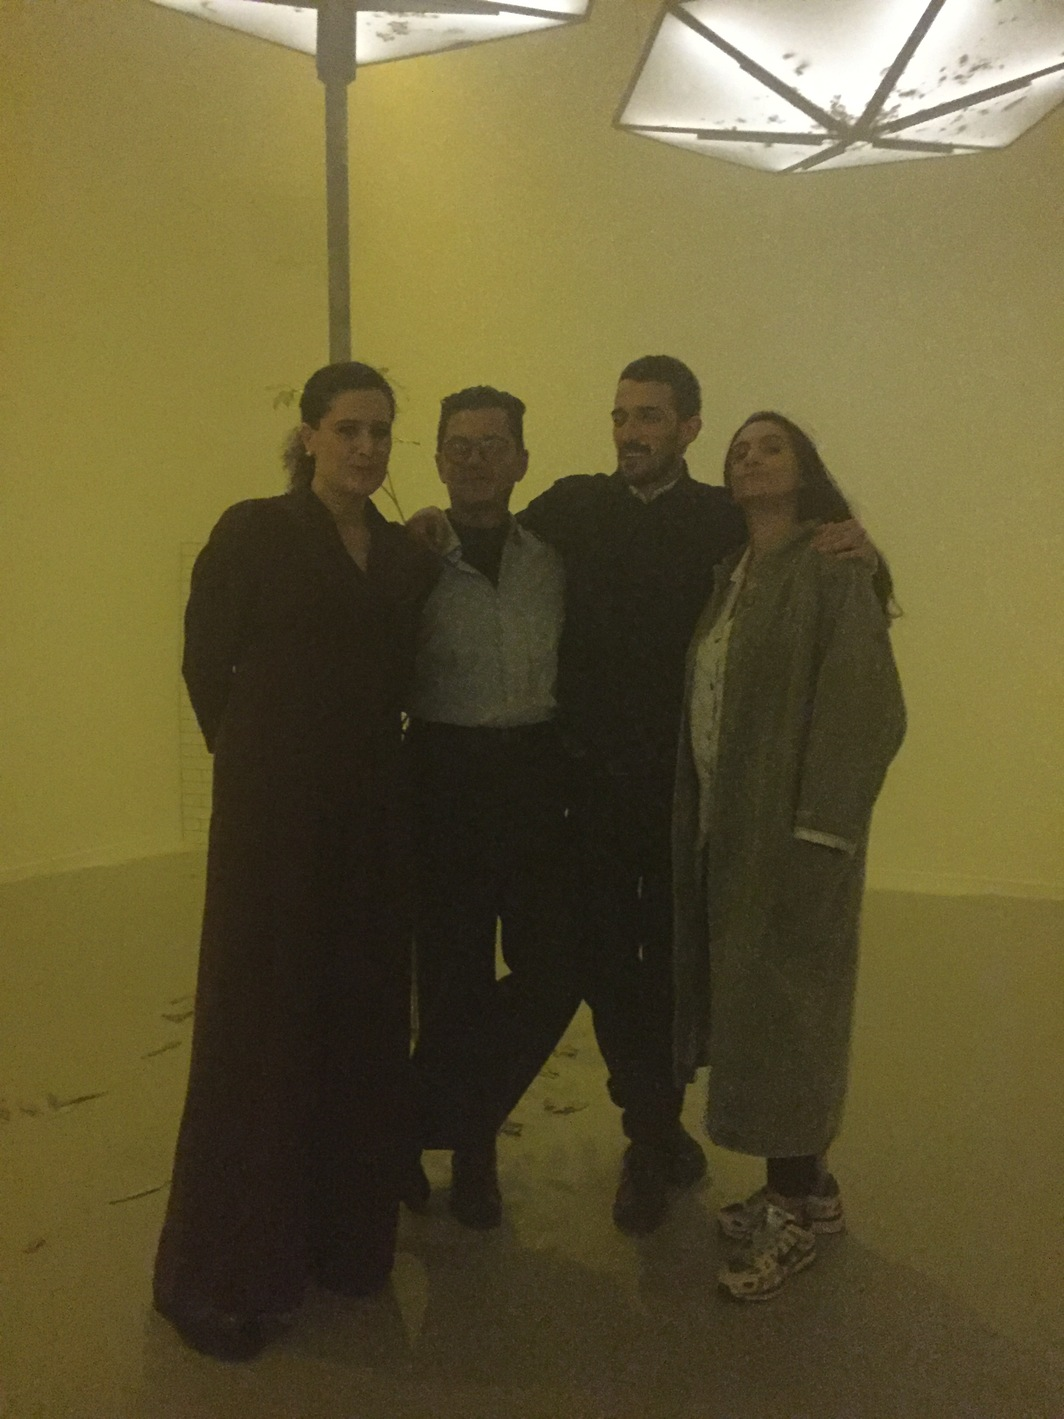 Lucia Casai and Monica Carroquino, from La Casa Encendida, and artist Alvaro Urbano.